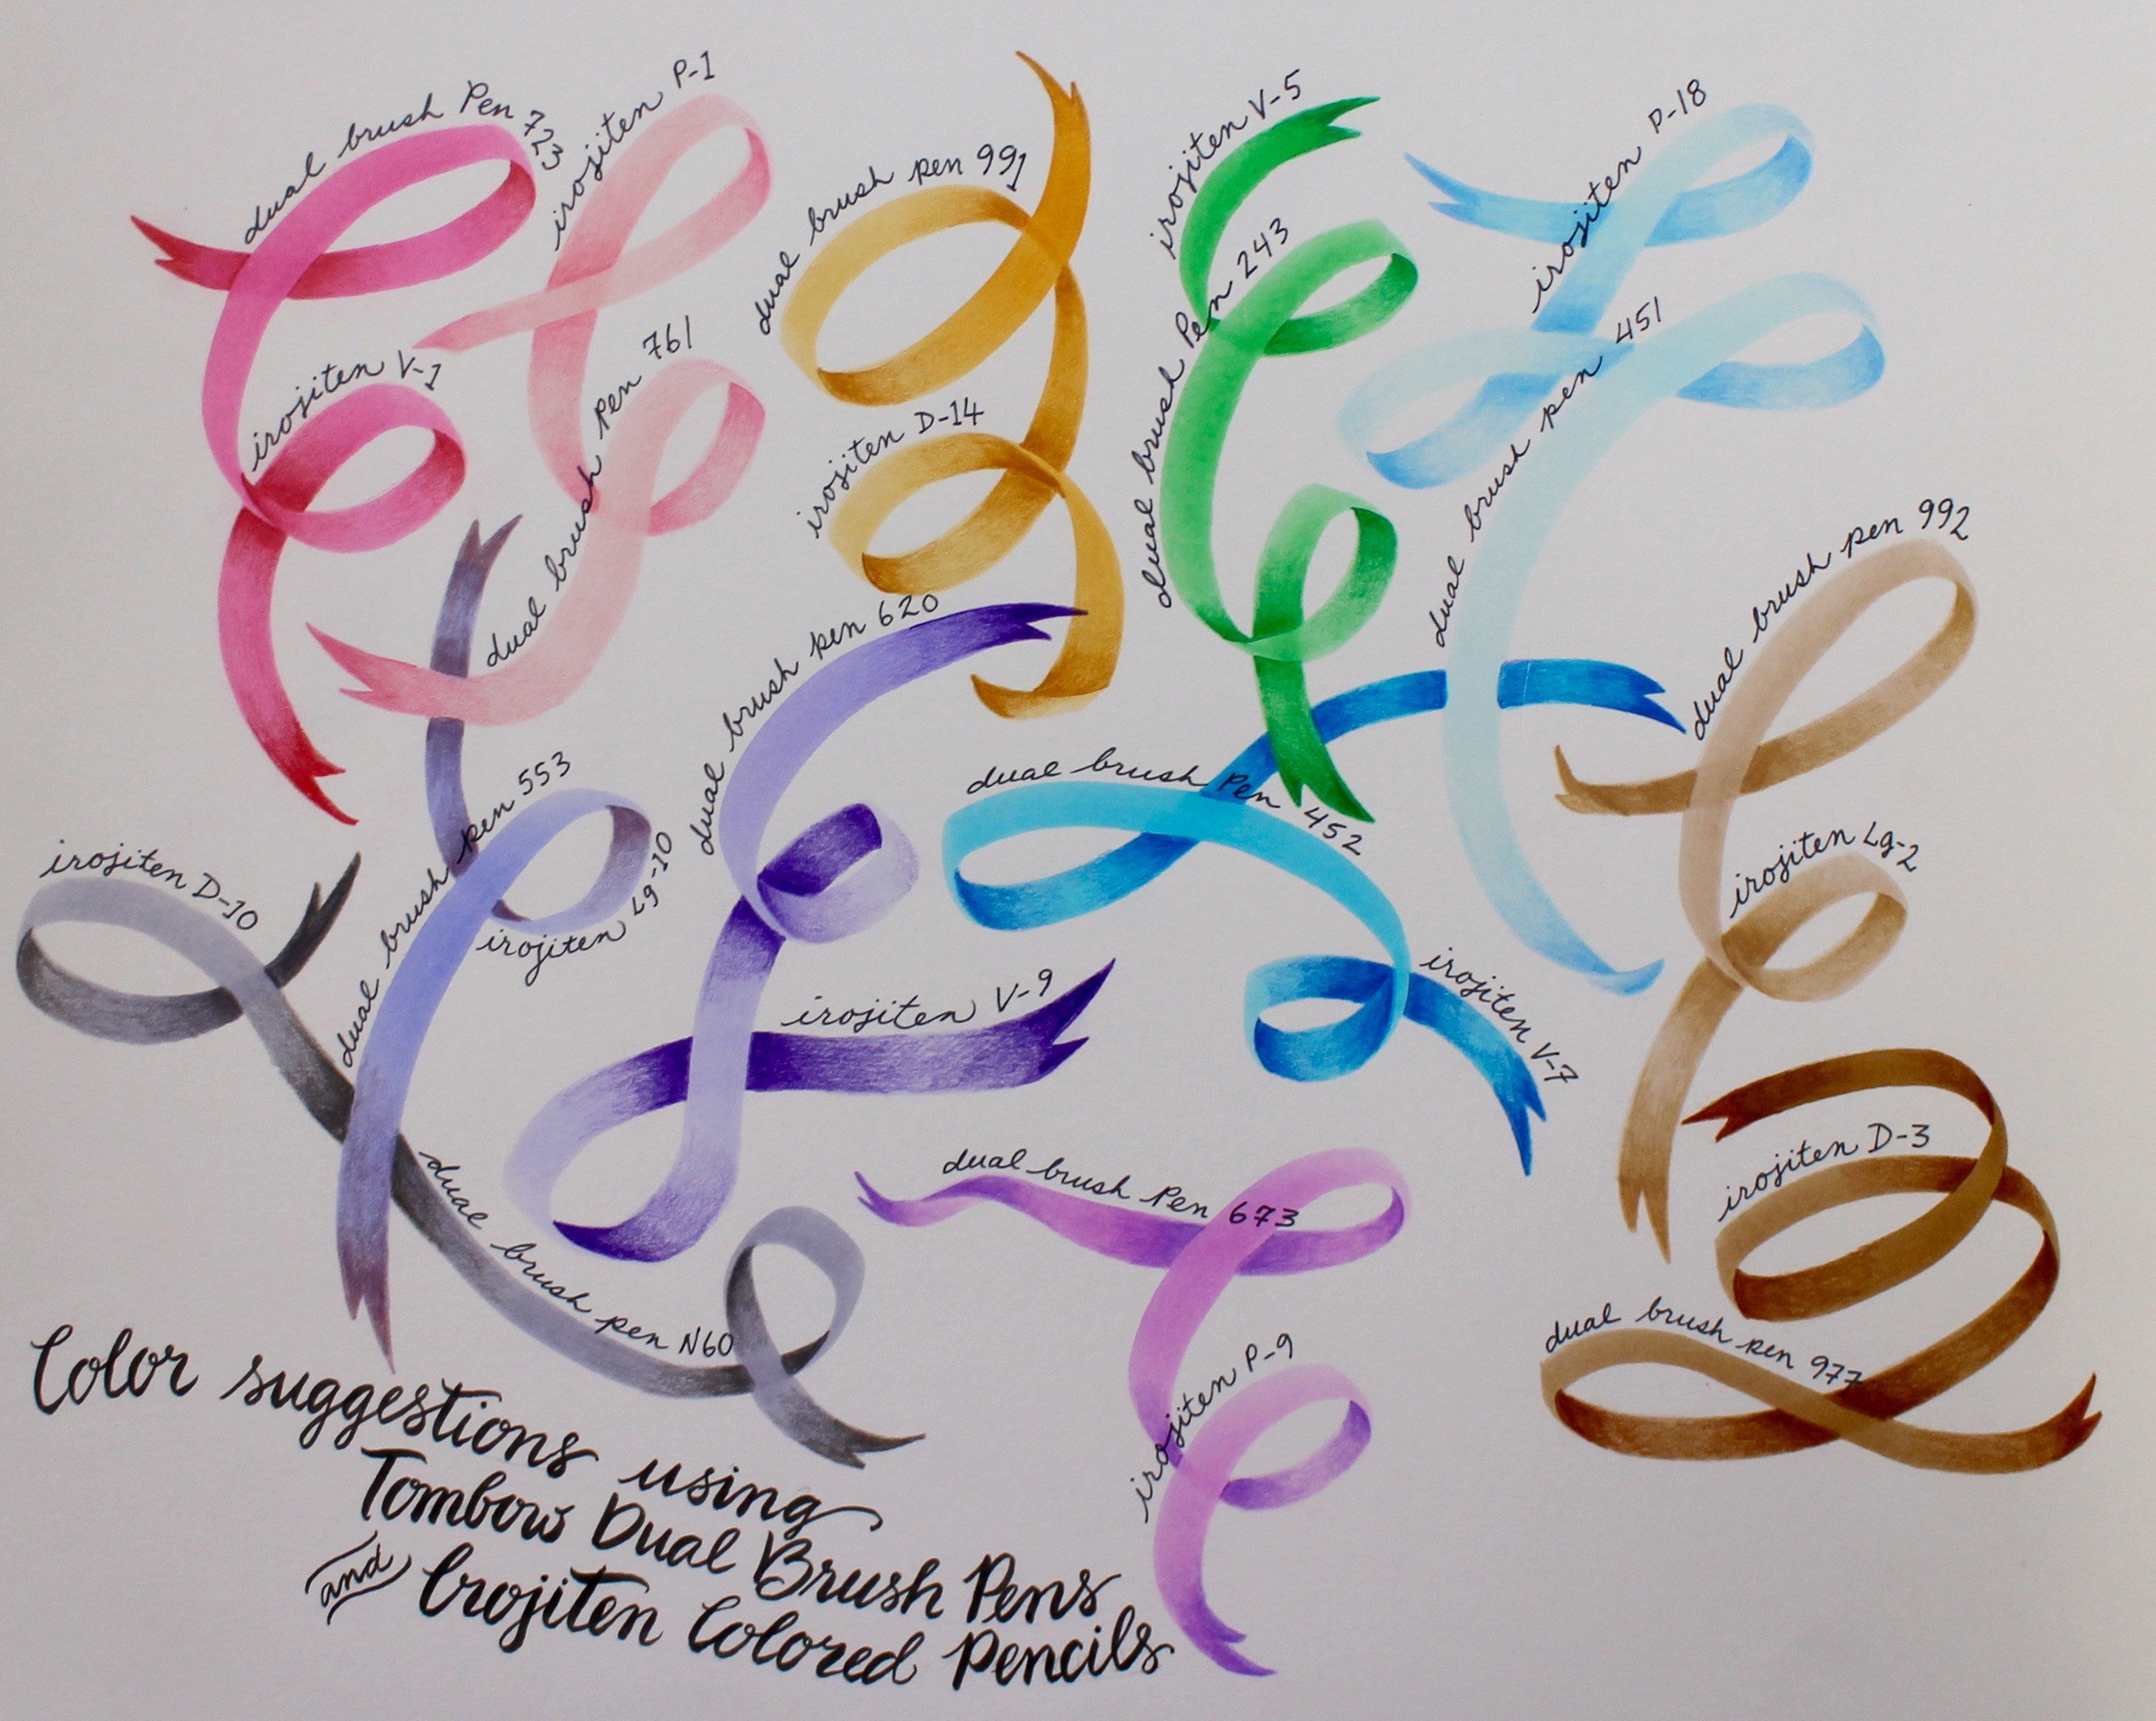 Color suggestions using Irojitens and Dual Brush Pens